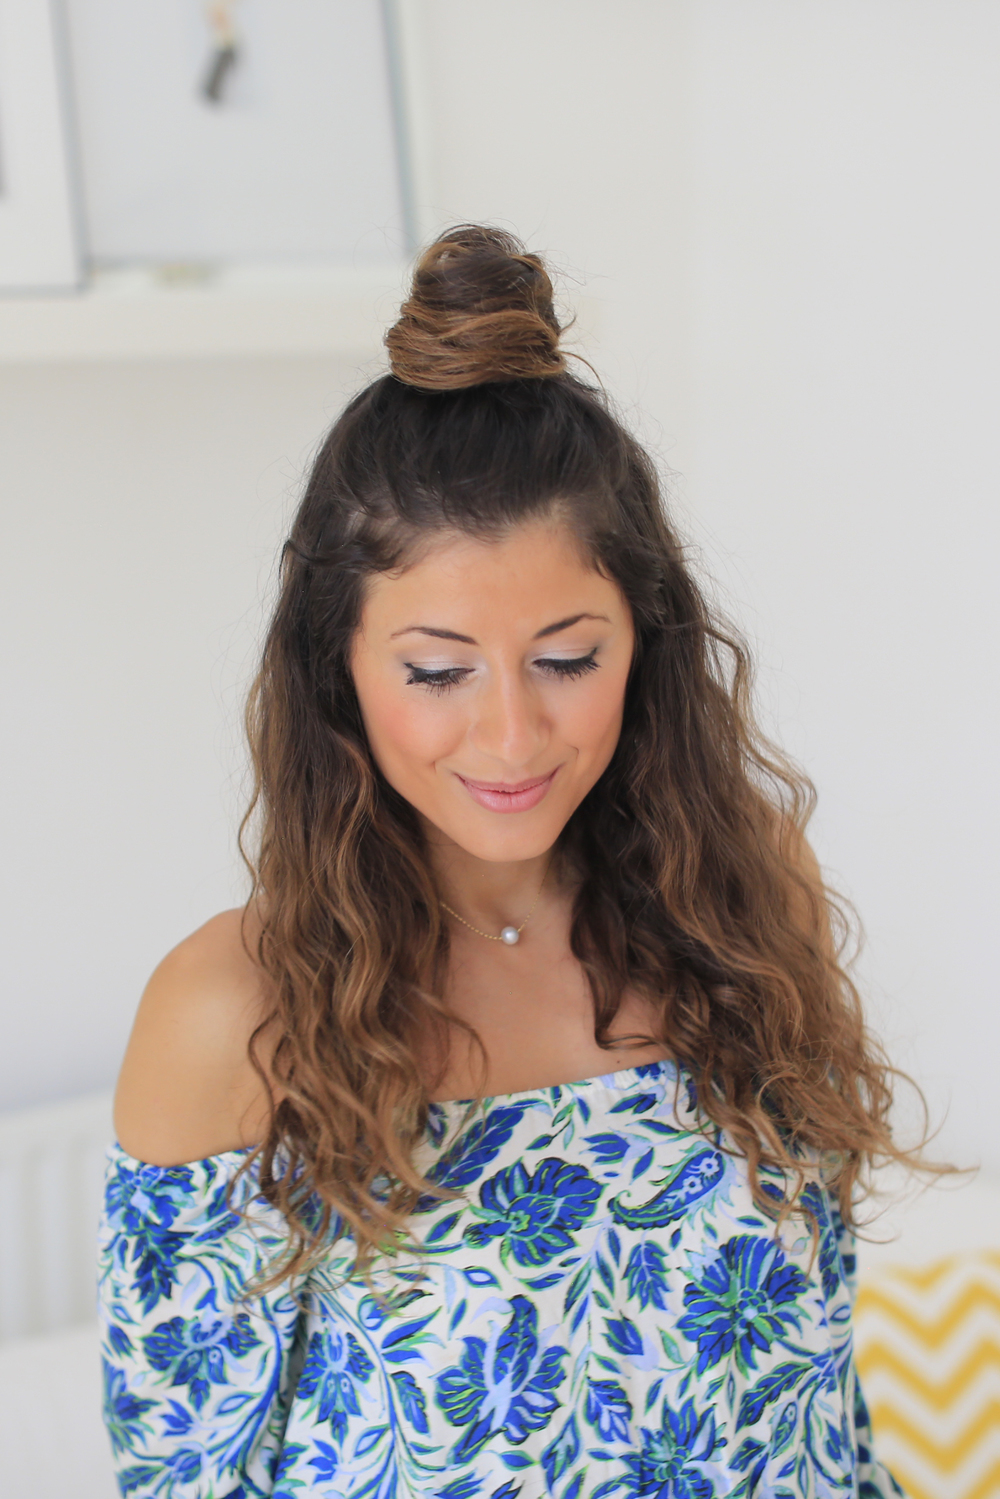 Cool Hairstyles For Curly Hair trnding haircuts